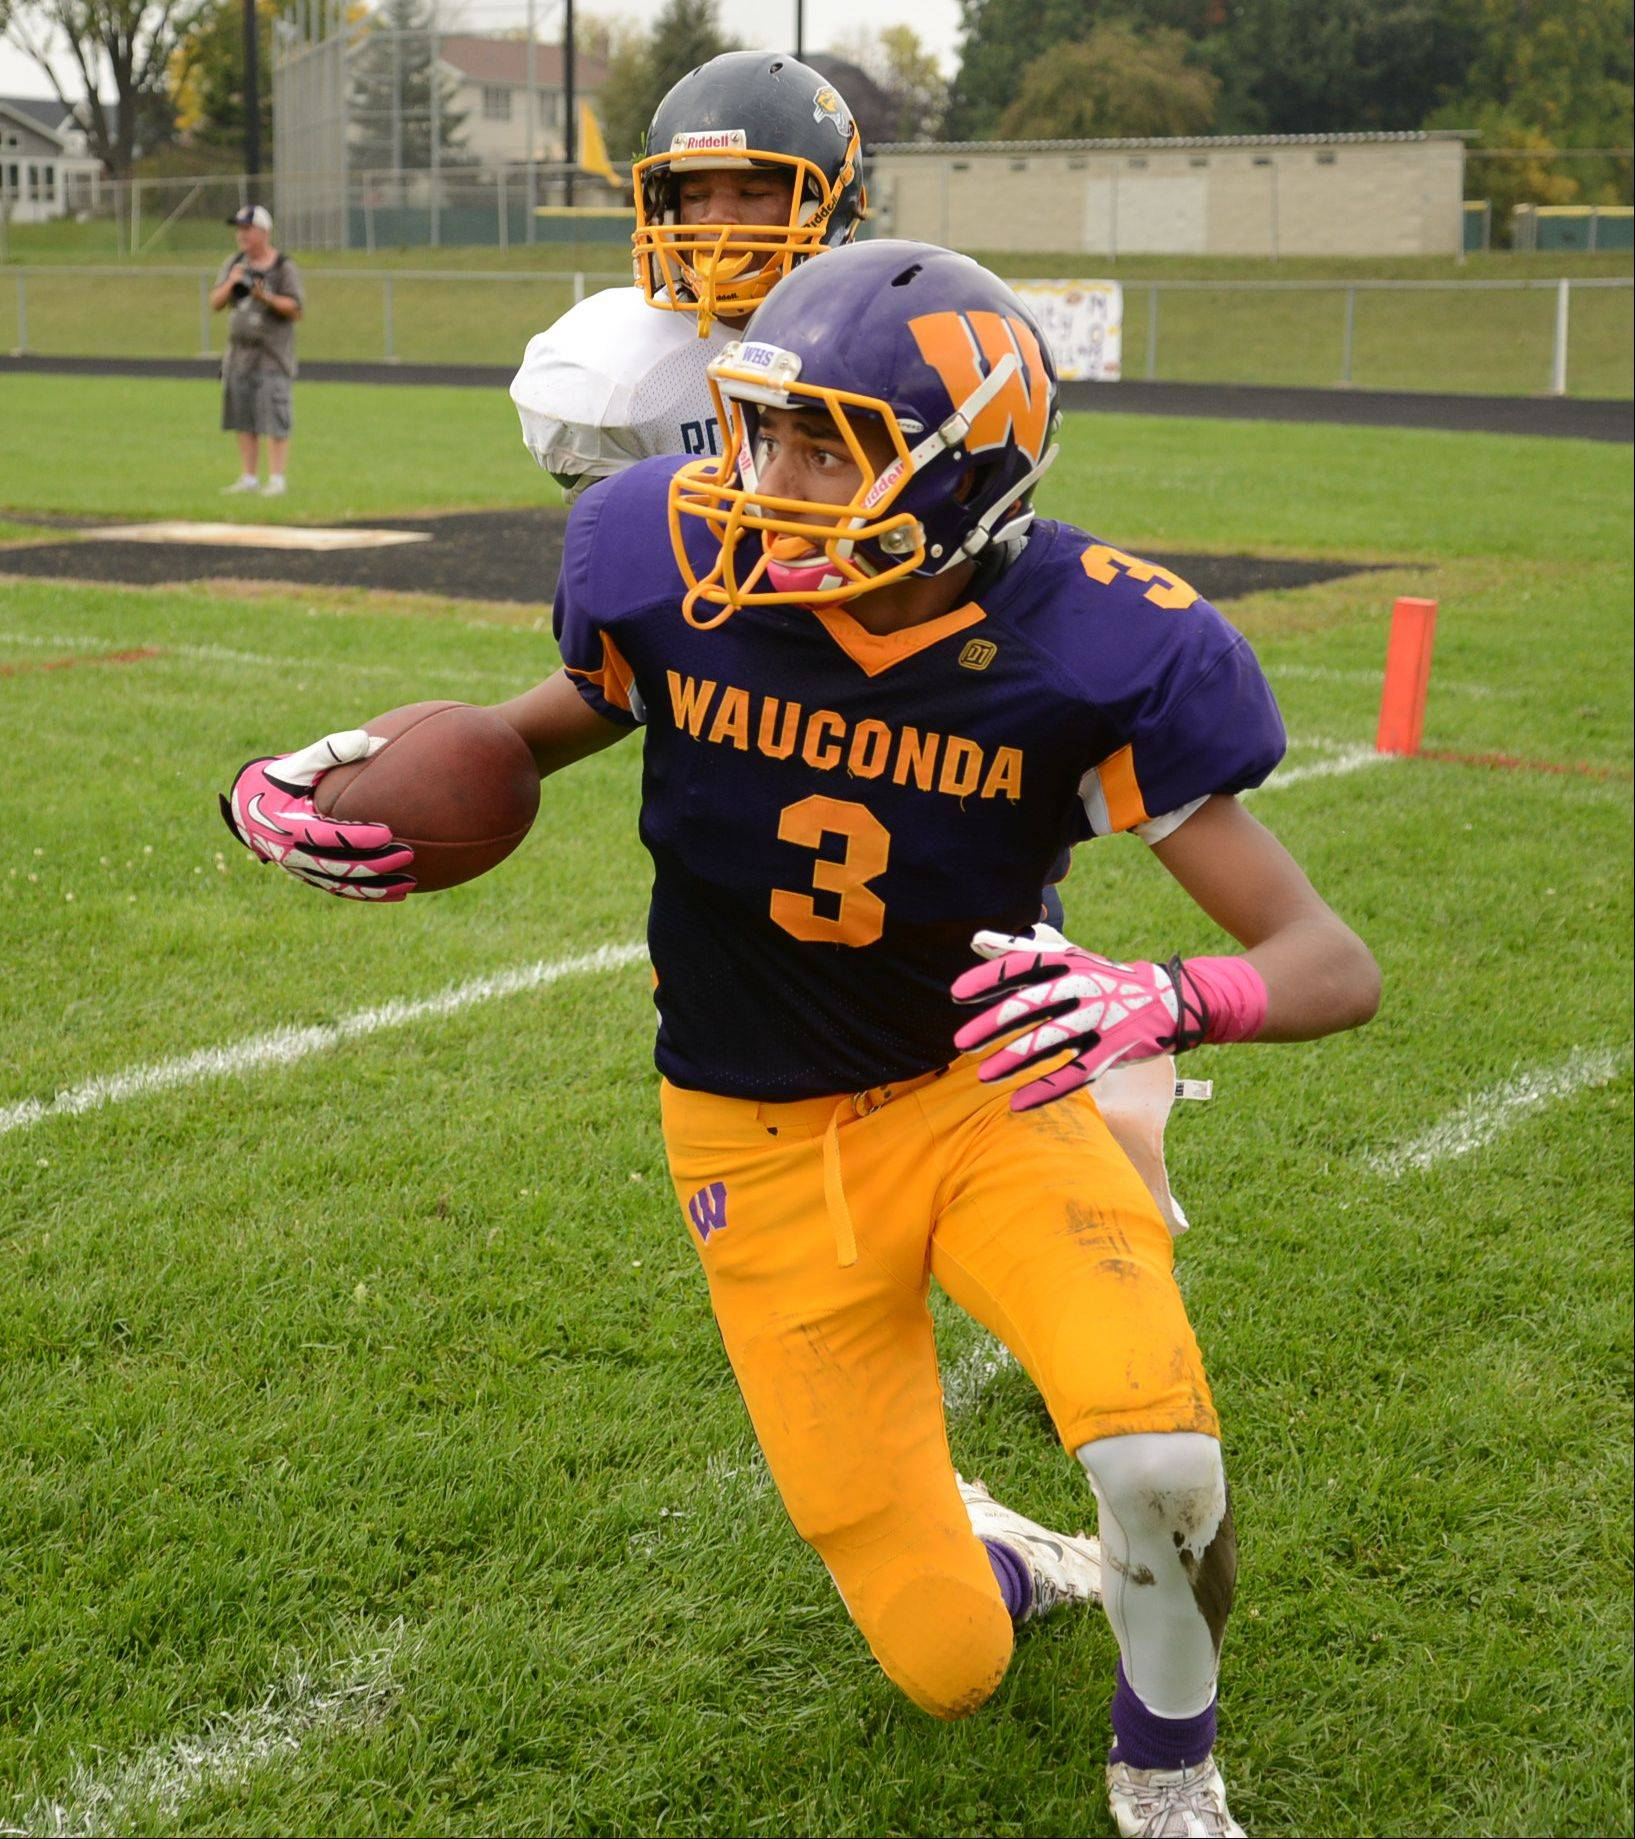 The Wauconda High School Bulldogs could play home games on artificial turf starting next year.